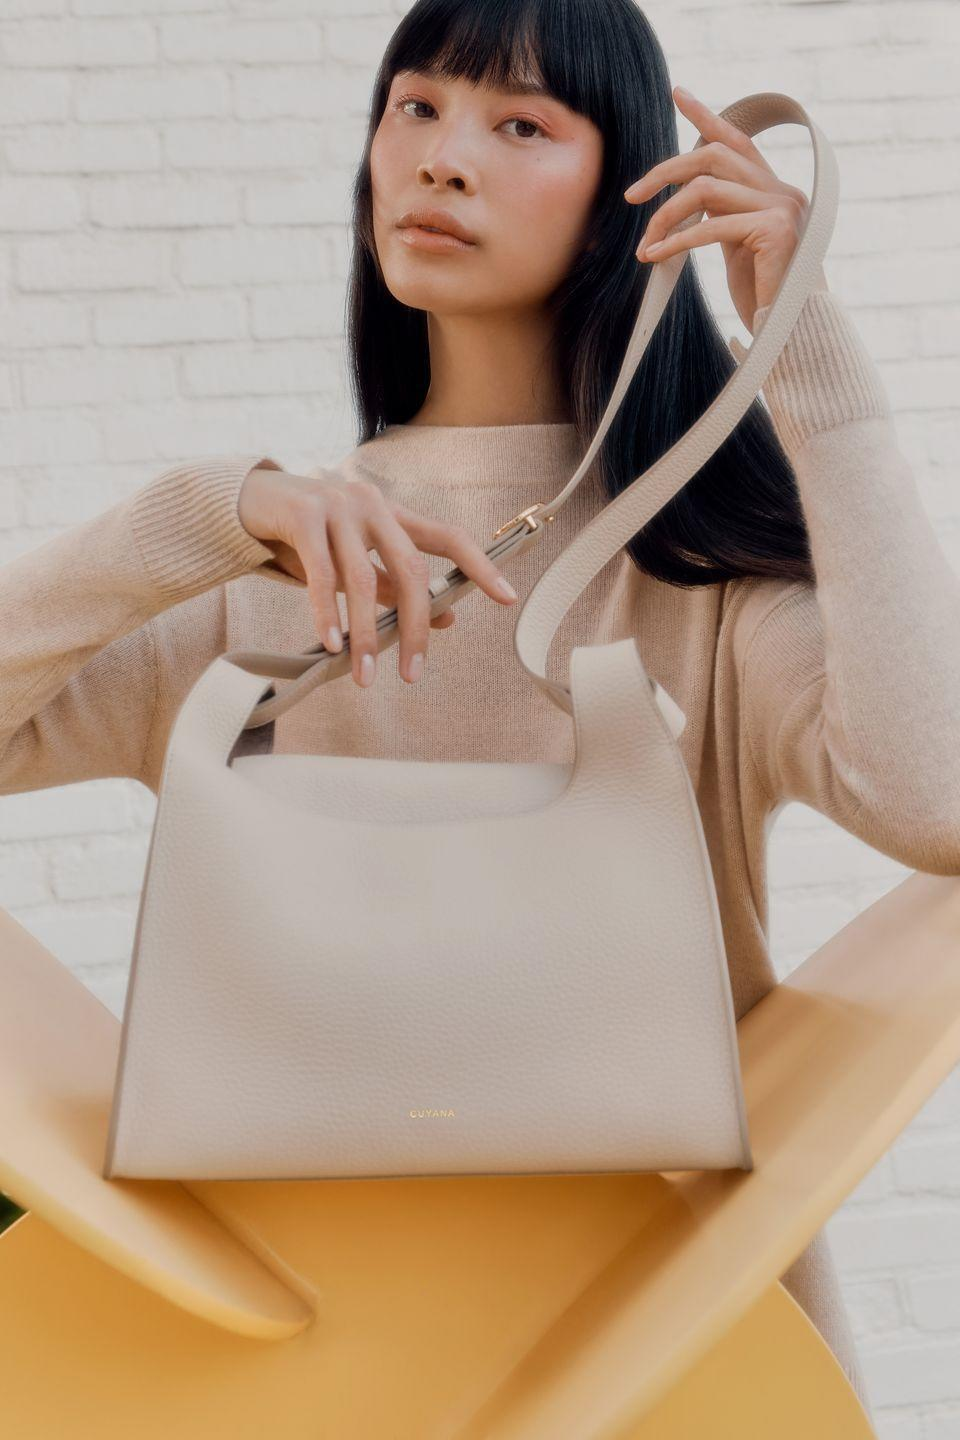 """<p><strong>Who:</strong> Cuyana<br></p><p><strong>What:</strong> Double Loop Bag and Mini Double Loop Bag</p><p><strong>Where:</strong> Online at cuyana.com</p><p><strong>Why: </strong>San Francisco based brand Cuyana has been devoted to high quality and sustainable leather goods since its inception ten years ago, and the latest offering is an expansion on their best-selling Oversized Double Loop Bag. The Crossbody allows hands-free, travel-friendly carrying of just the essentials. Don't miss the opportunity to sign up for the Mini Double Loop, a smaller version, which is available for pre-order now before its launch in May.</p><p><a class=""""link rapid-noclick-resp"""" href=""""https://go.redirectingat.com?id=74968X1596630&url=https%3A%2F%2Fwww.cuyana.com%2Fstories%2Fdouble-loop-bag.html&sref=https%3A%2F%2Fwww.elle.com%2Ffashion%2Fshopping%2Fg35685914%2Fmarch-2021-fashion-collaborations-launches%2F"""" rel=""""nofollow noopener"""" target=""""_blank"""" data-ylk=""""slk:SHOP NOW"""">SHOP NOW</a></p>"""